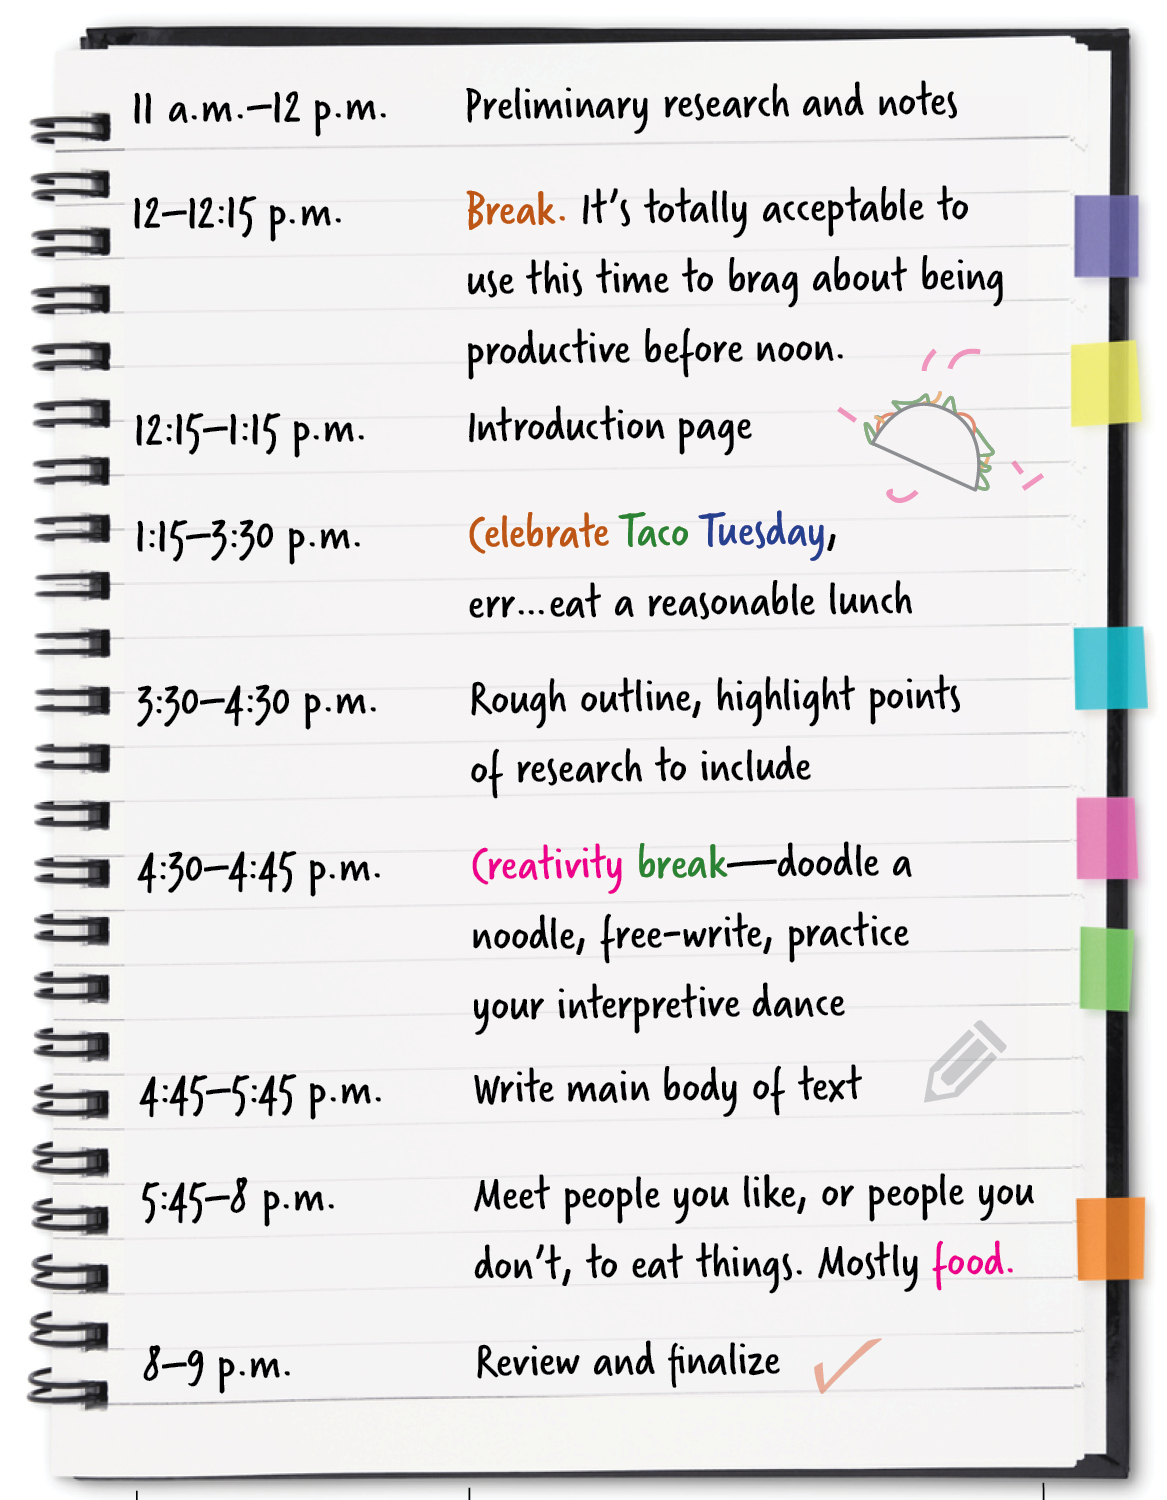 Notebook graphic displaying: 11 a.m.–12 p.m.: Preliminary research and notes 12 p.m.–12:15 p.m.: Break. It's totally acceptable to use this time to brag about being productive before noon. 12:15–1:15 p.m.: Introduction page 1:15–3:30 p.m.: Celebrate Taco Tuesday, err…eat a reasonable lunch 3:30–4:30 p.m.: Rough outline, highlight points of research to include 4:30–4:45 p.m.: Creativity break—doodle a noodle, free-write, practice your interpretive dance 4:45–5:45 p.m.: Write main body of text 5:45–8 p.m.: Meet people you like, or people you don't, to eat things. Mostly food. 8–9 p.m.: Review and finalize